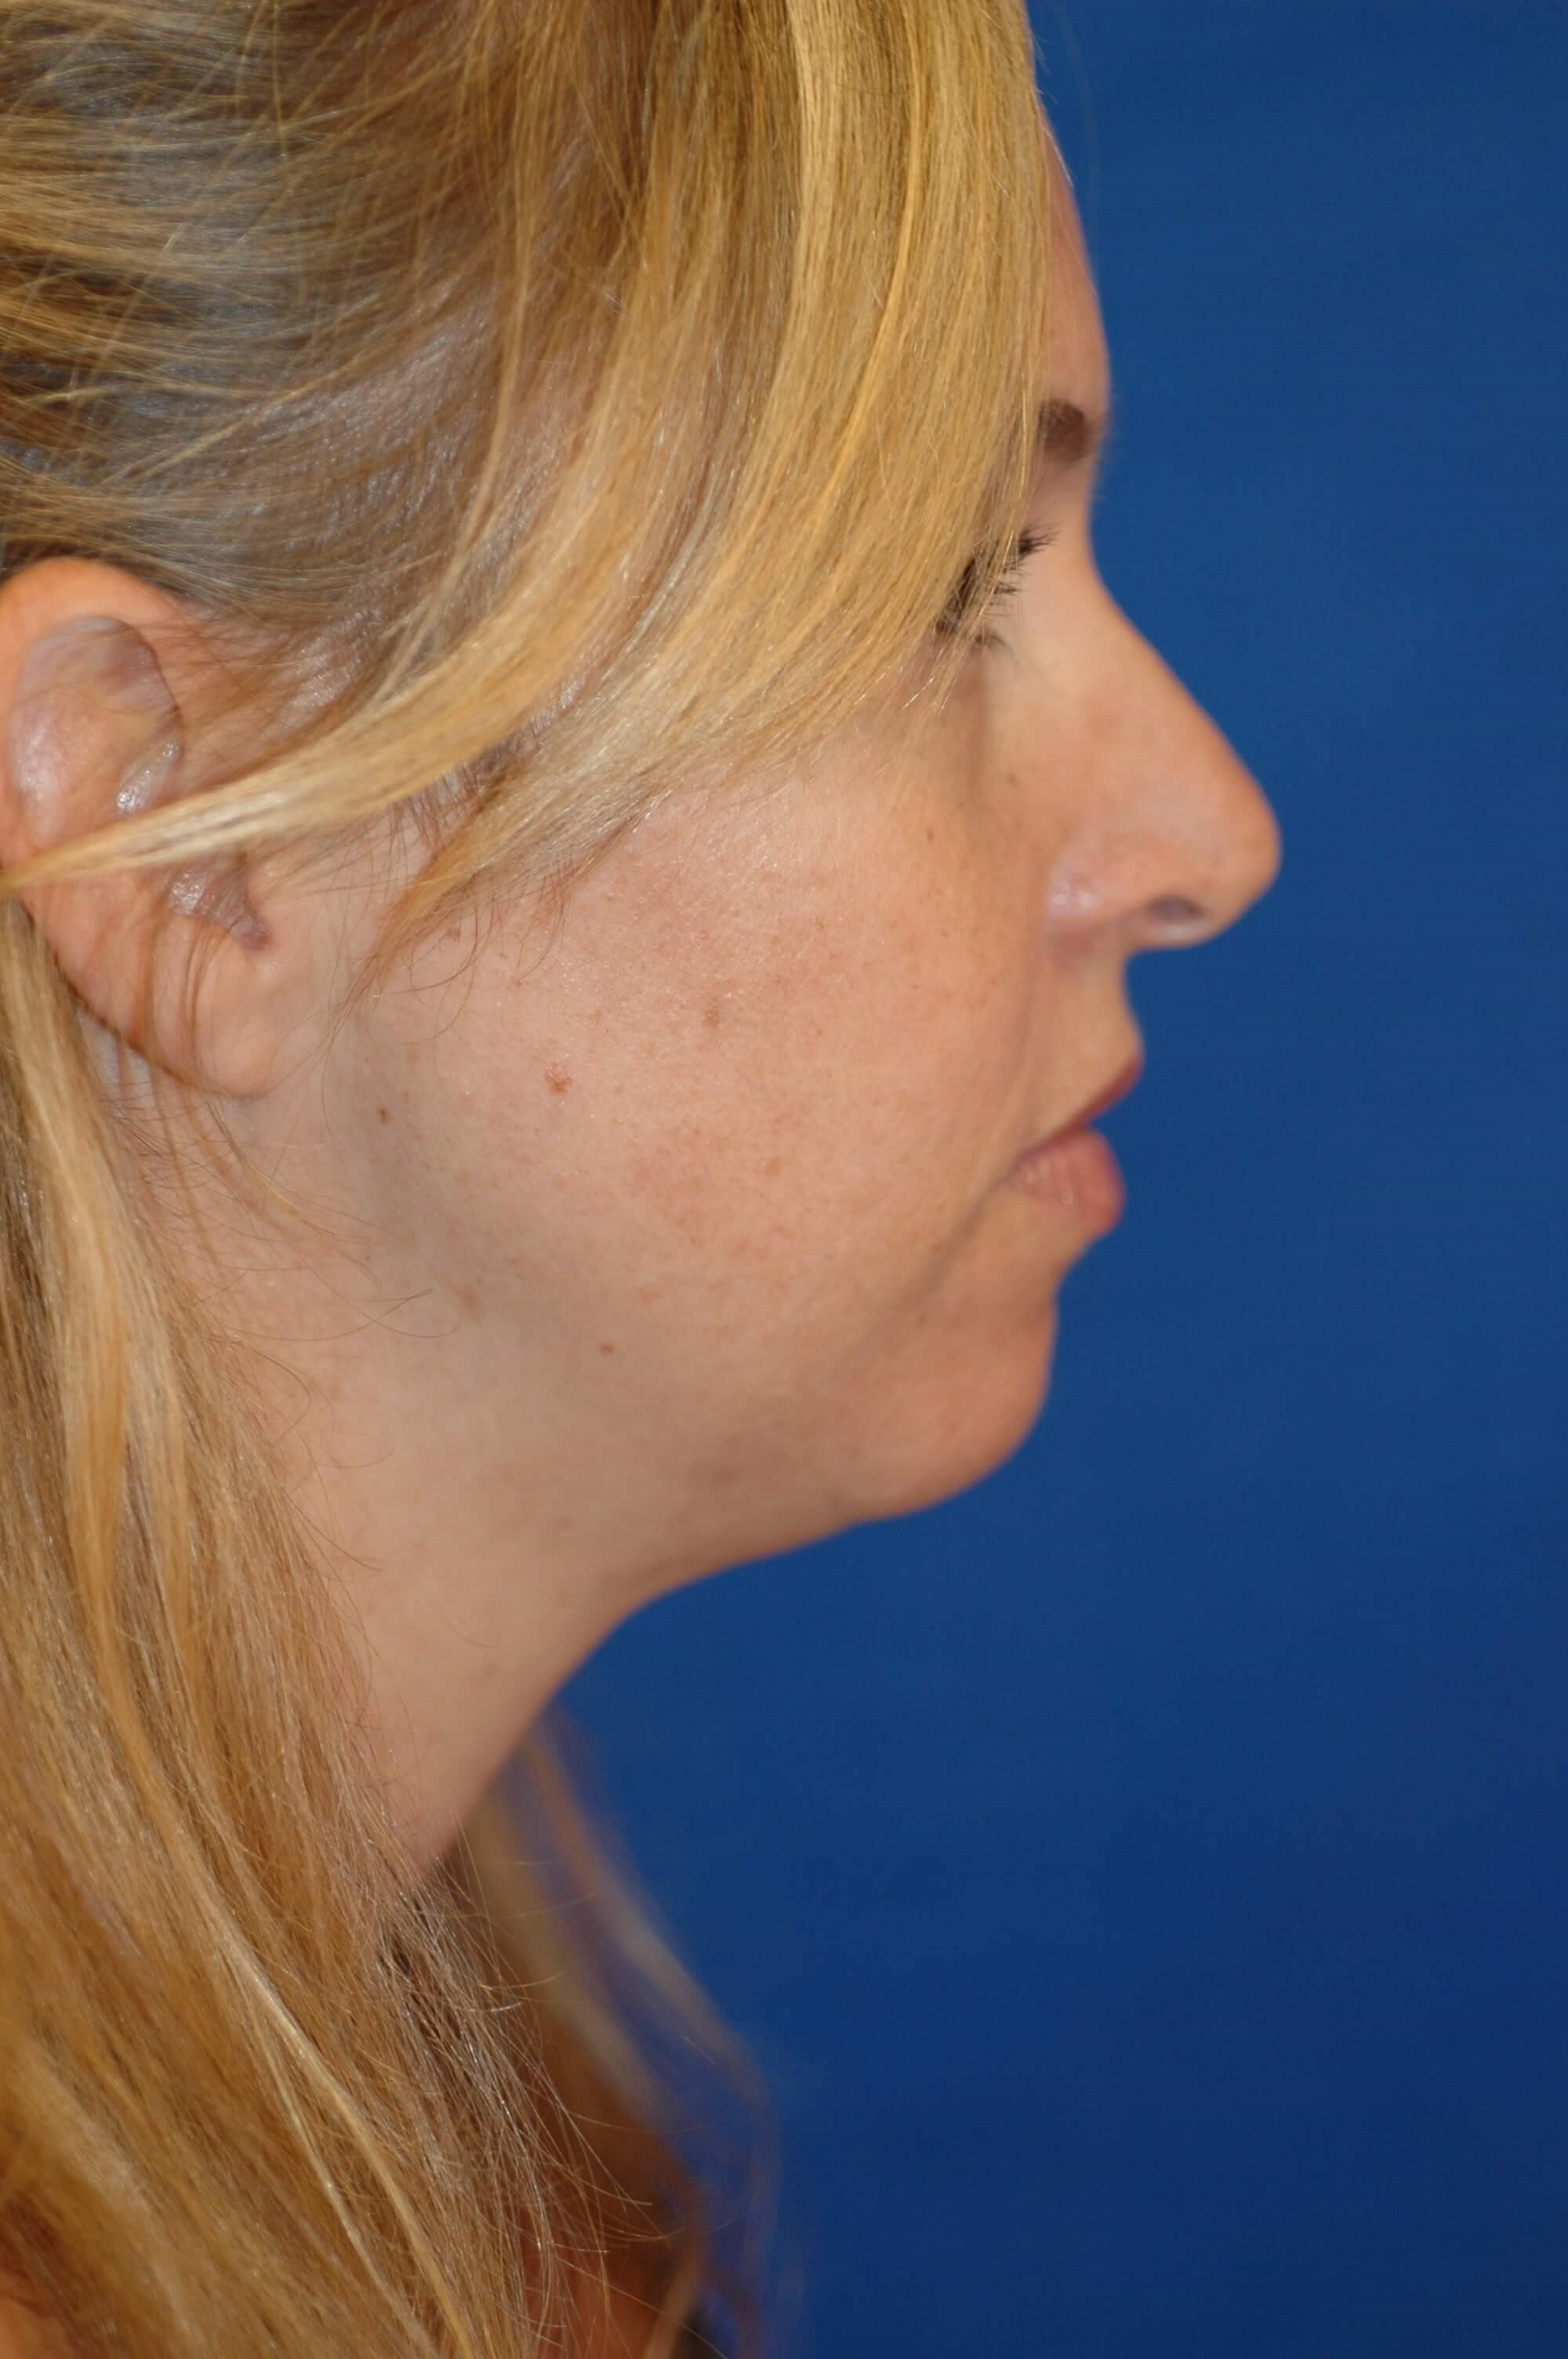 Newport Beach Chin Implant Side View Before